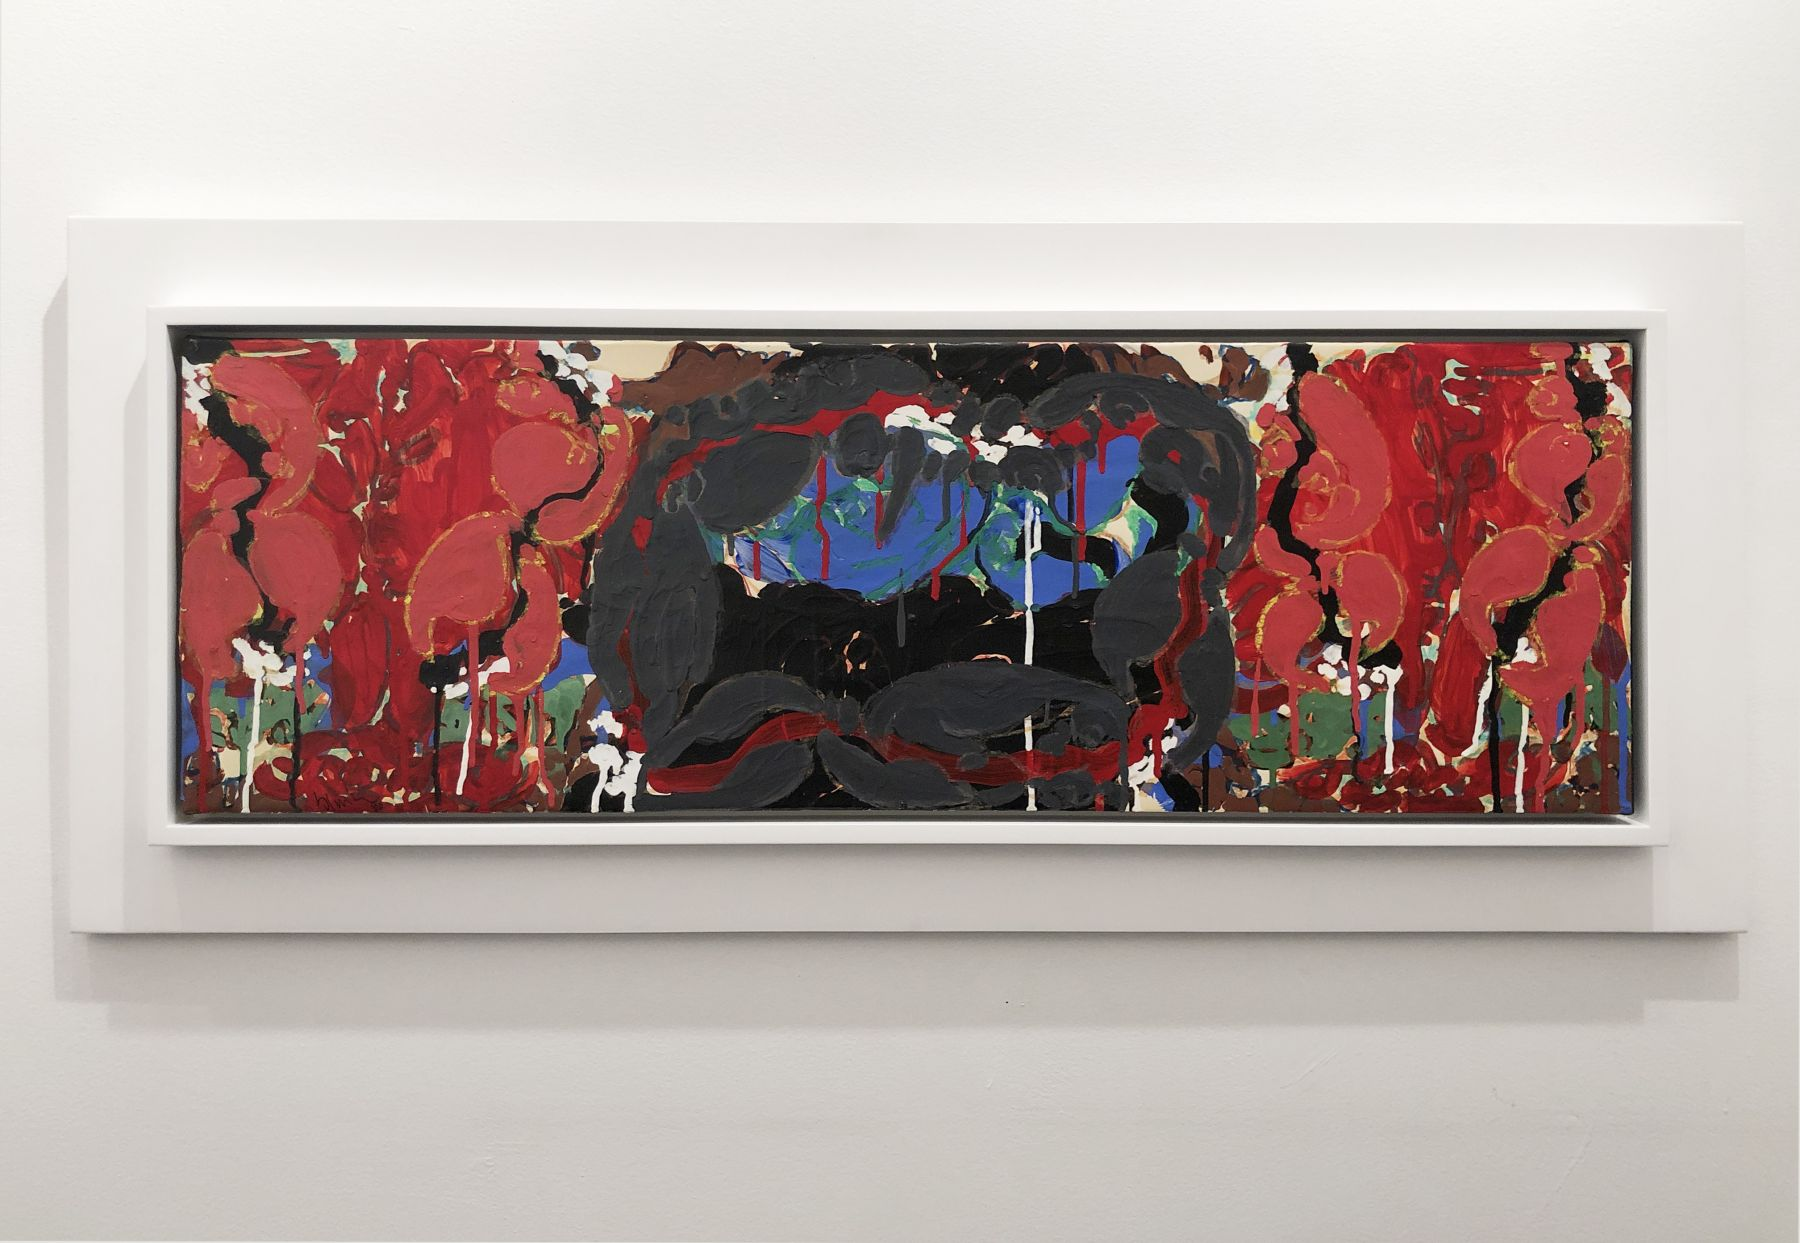 Norman Bluhm, Untitled, 1980